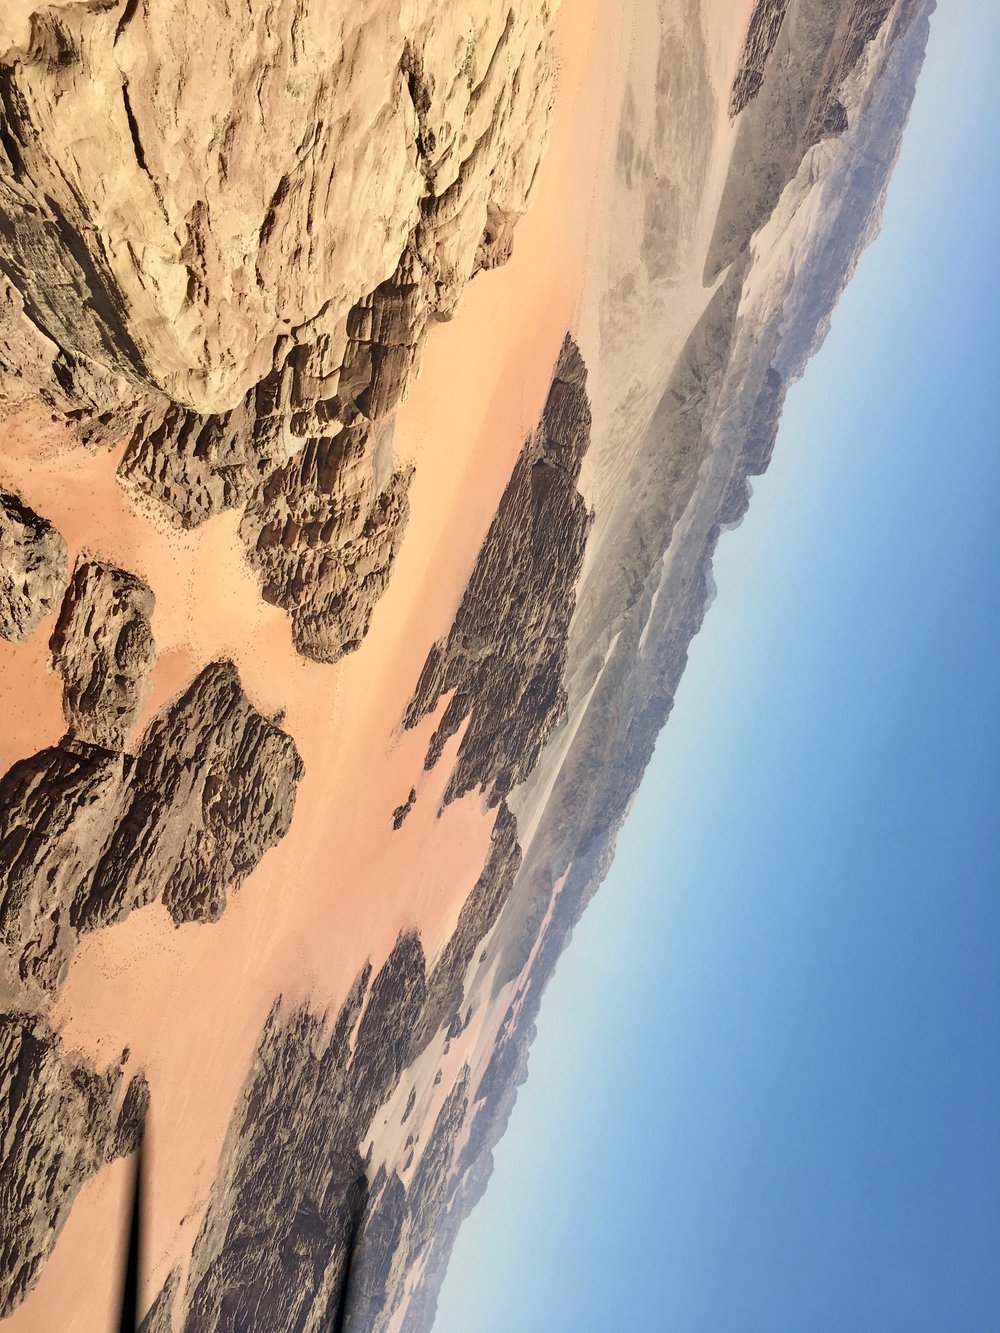 Wadi Rum inverted from the Xtra 300L